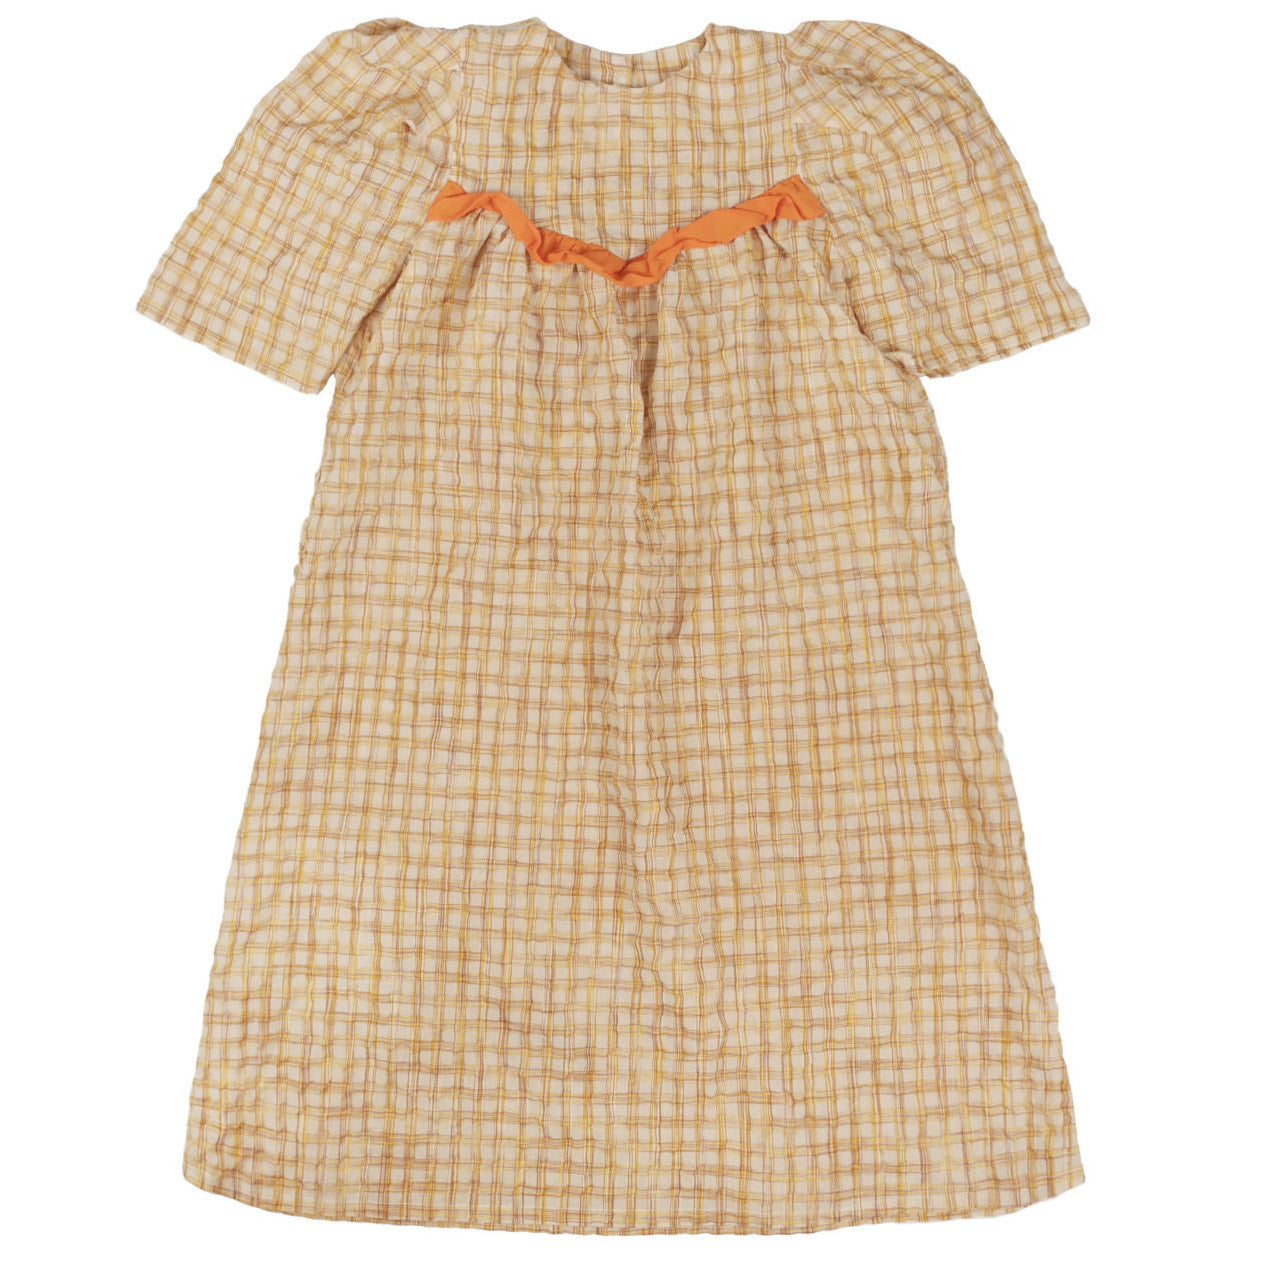 tambere gingham puff sleeve dress